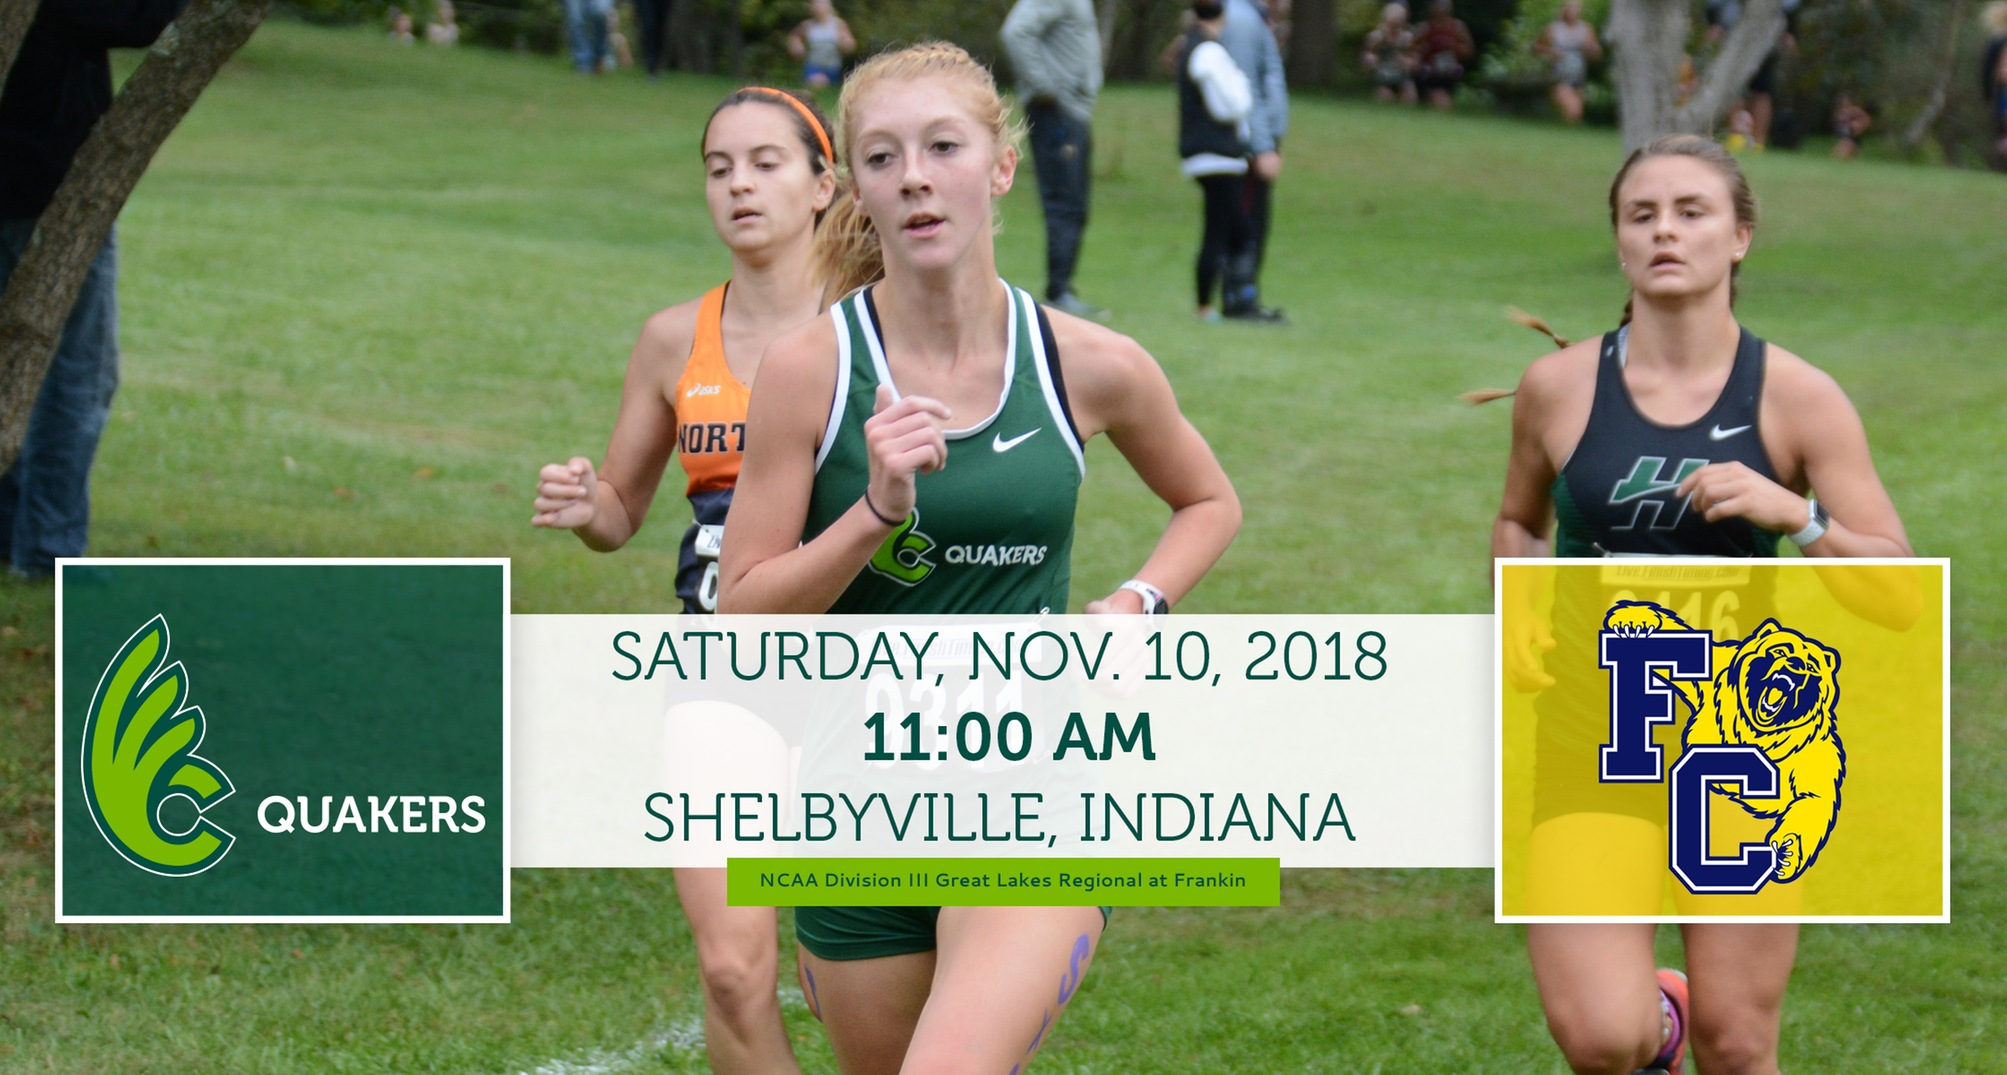 Women's Cross Country Heads to NCAA Great Lakes Regional at Franklin Saturday